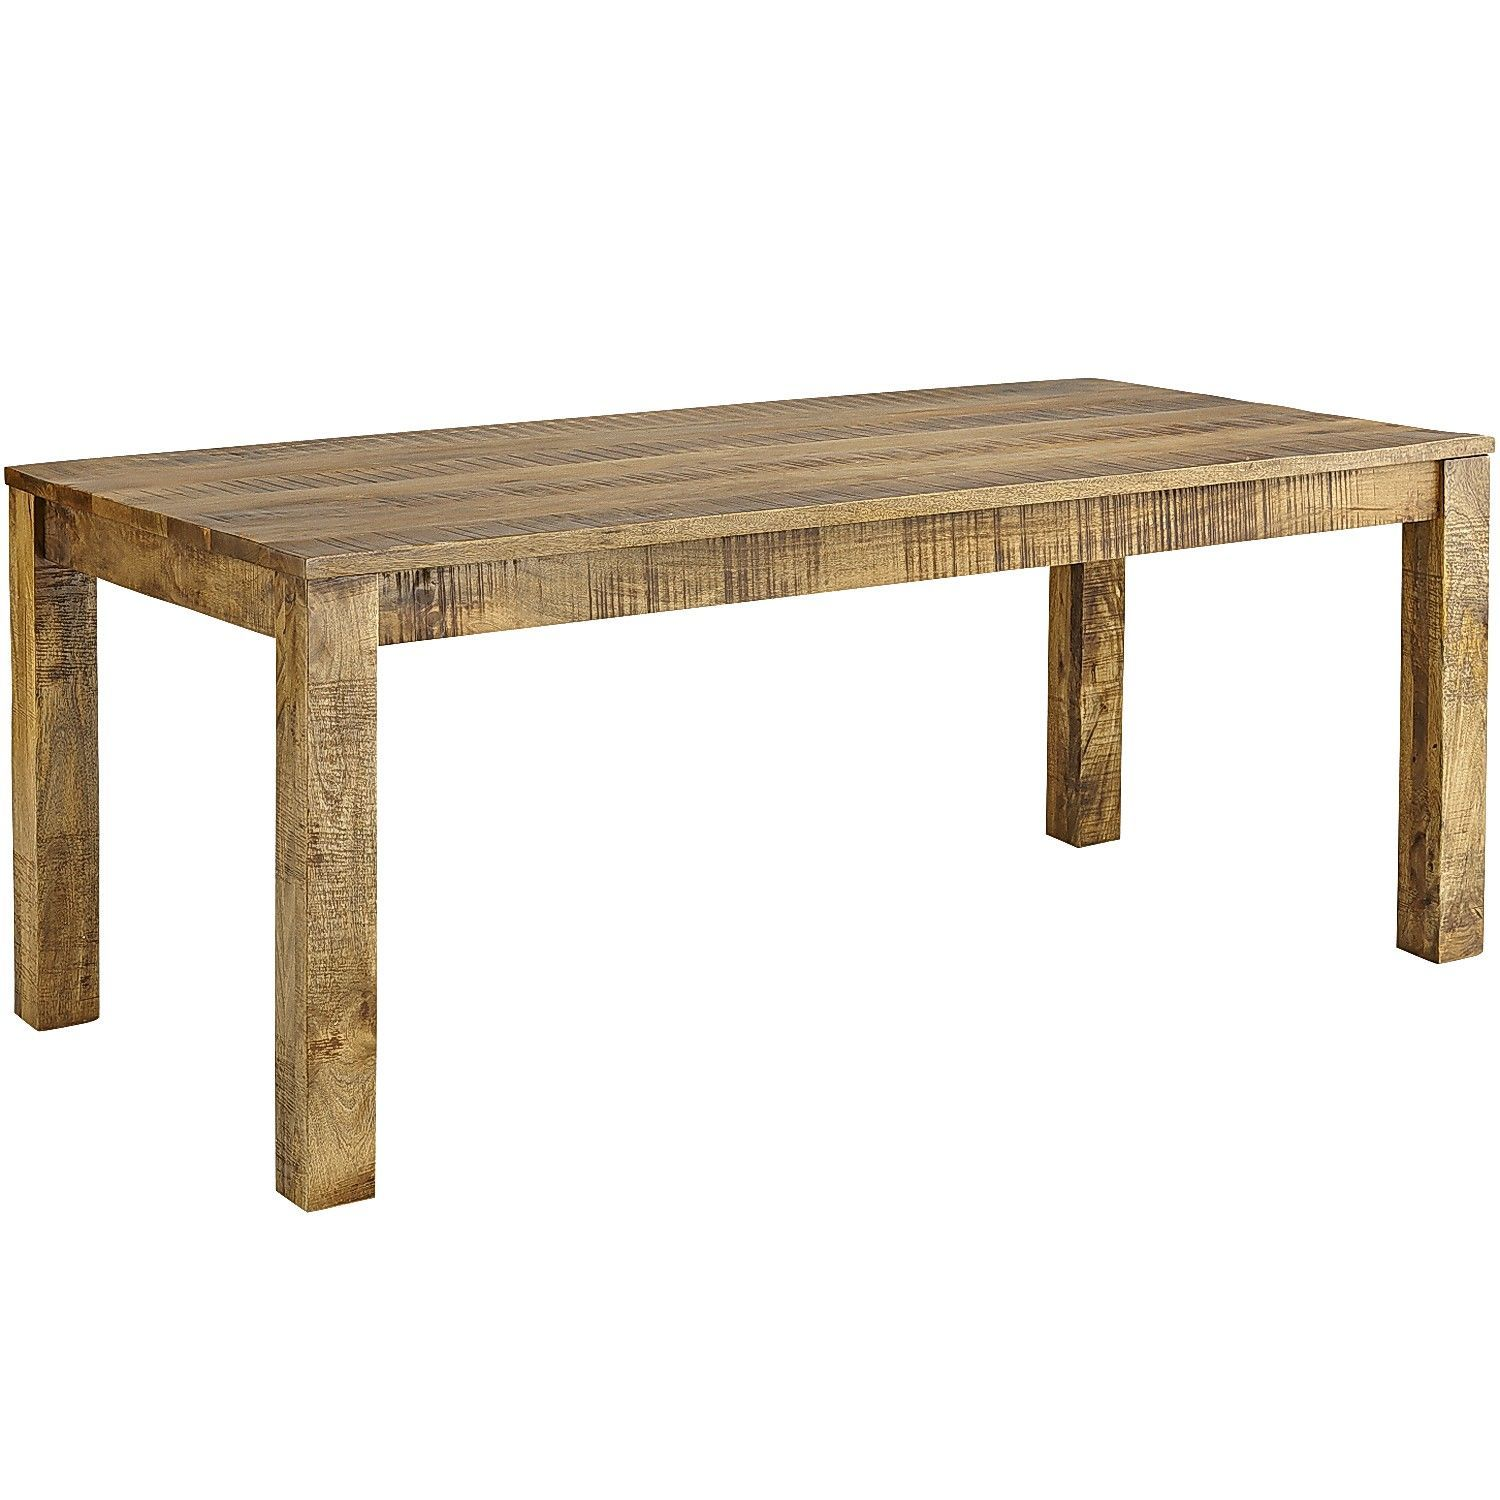 The uuma quot office registration table and center table will be in - Parsons Dining Table Java Pier 1 Imports